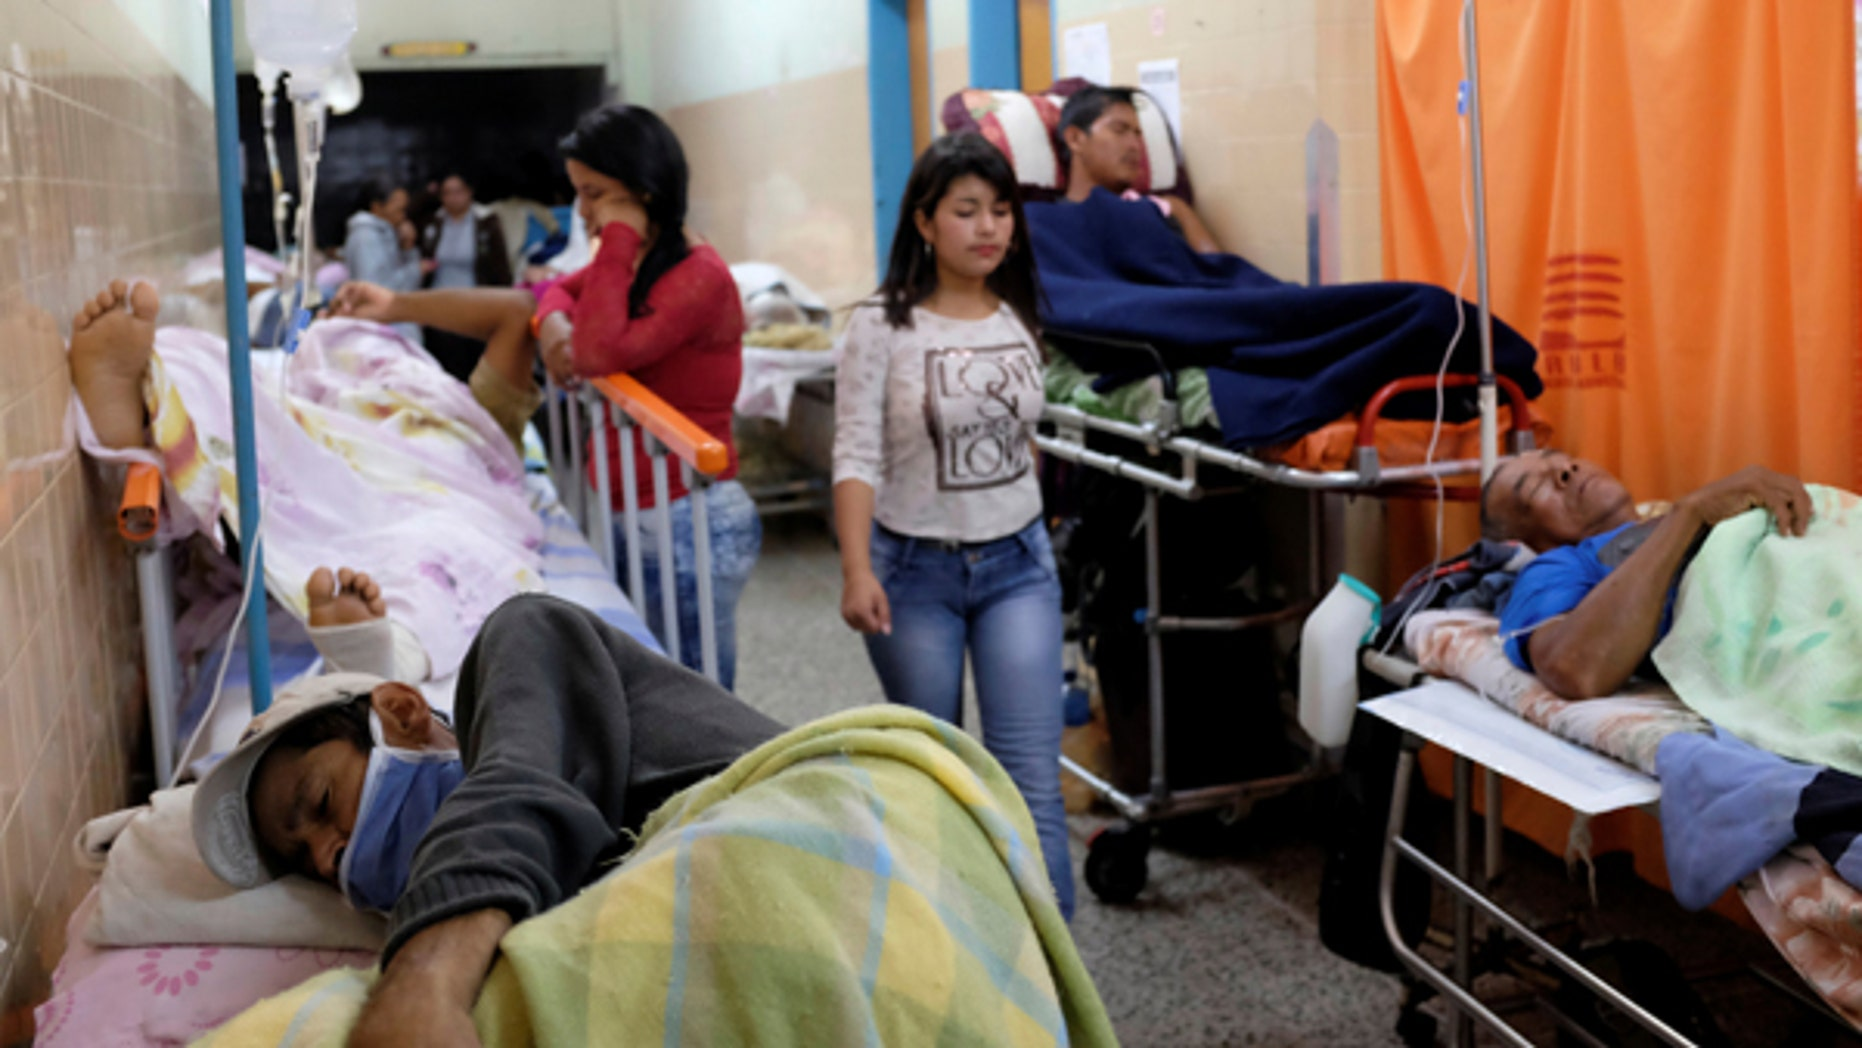 Patients lie on beds in an aisle of the emergency room at the University Hospital in Merida, Venezuela June 17, 2016. Picture taken June 17, 2016.